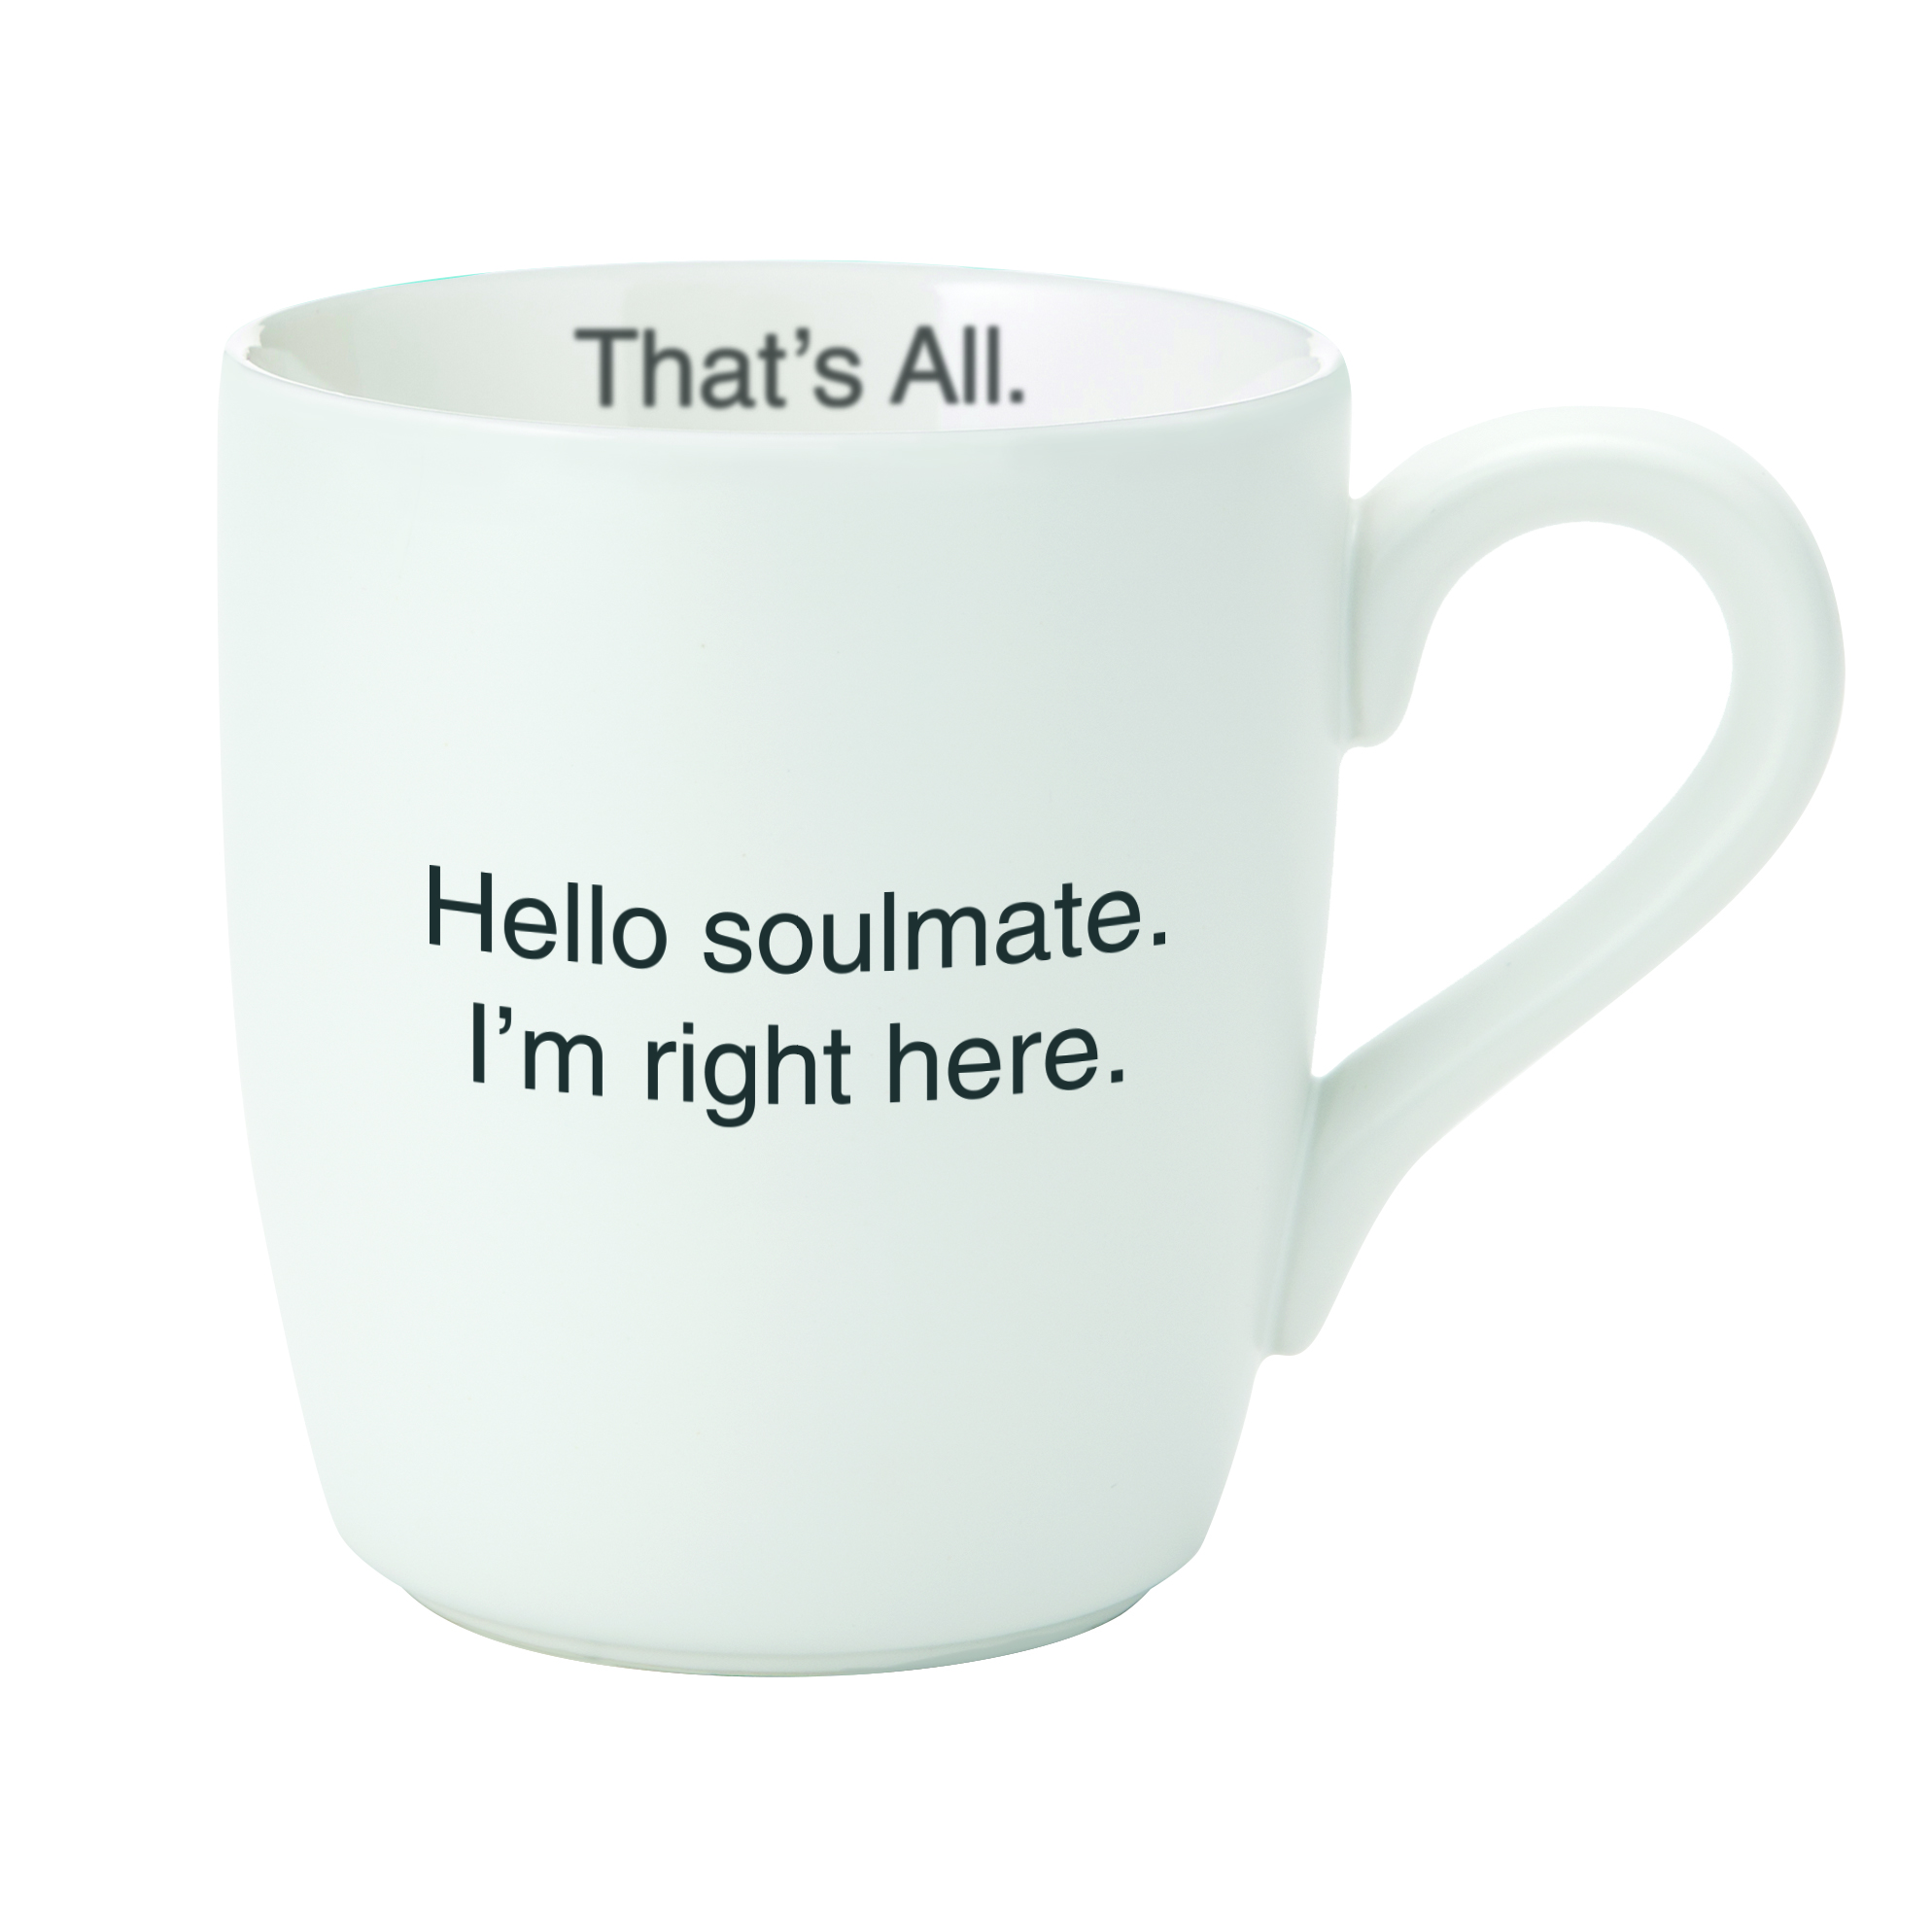 That's All® Mug - Hello Soulmate. I'm Right Here